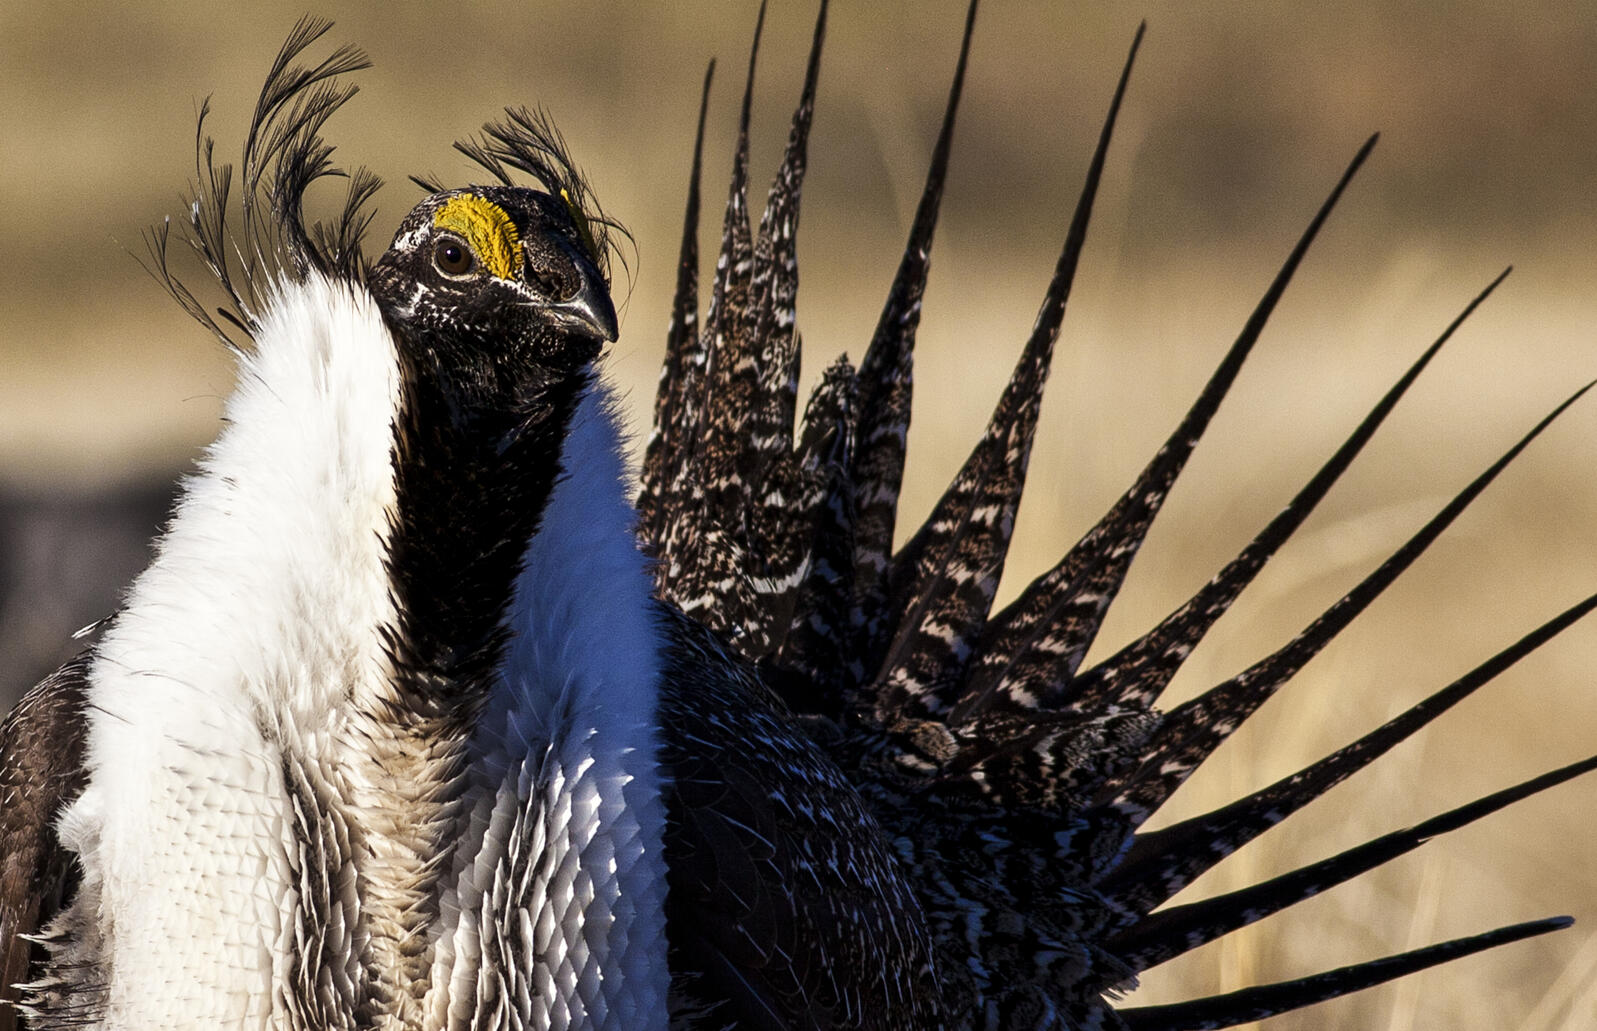 Close up photo of a Greater Sage-Grouse.